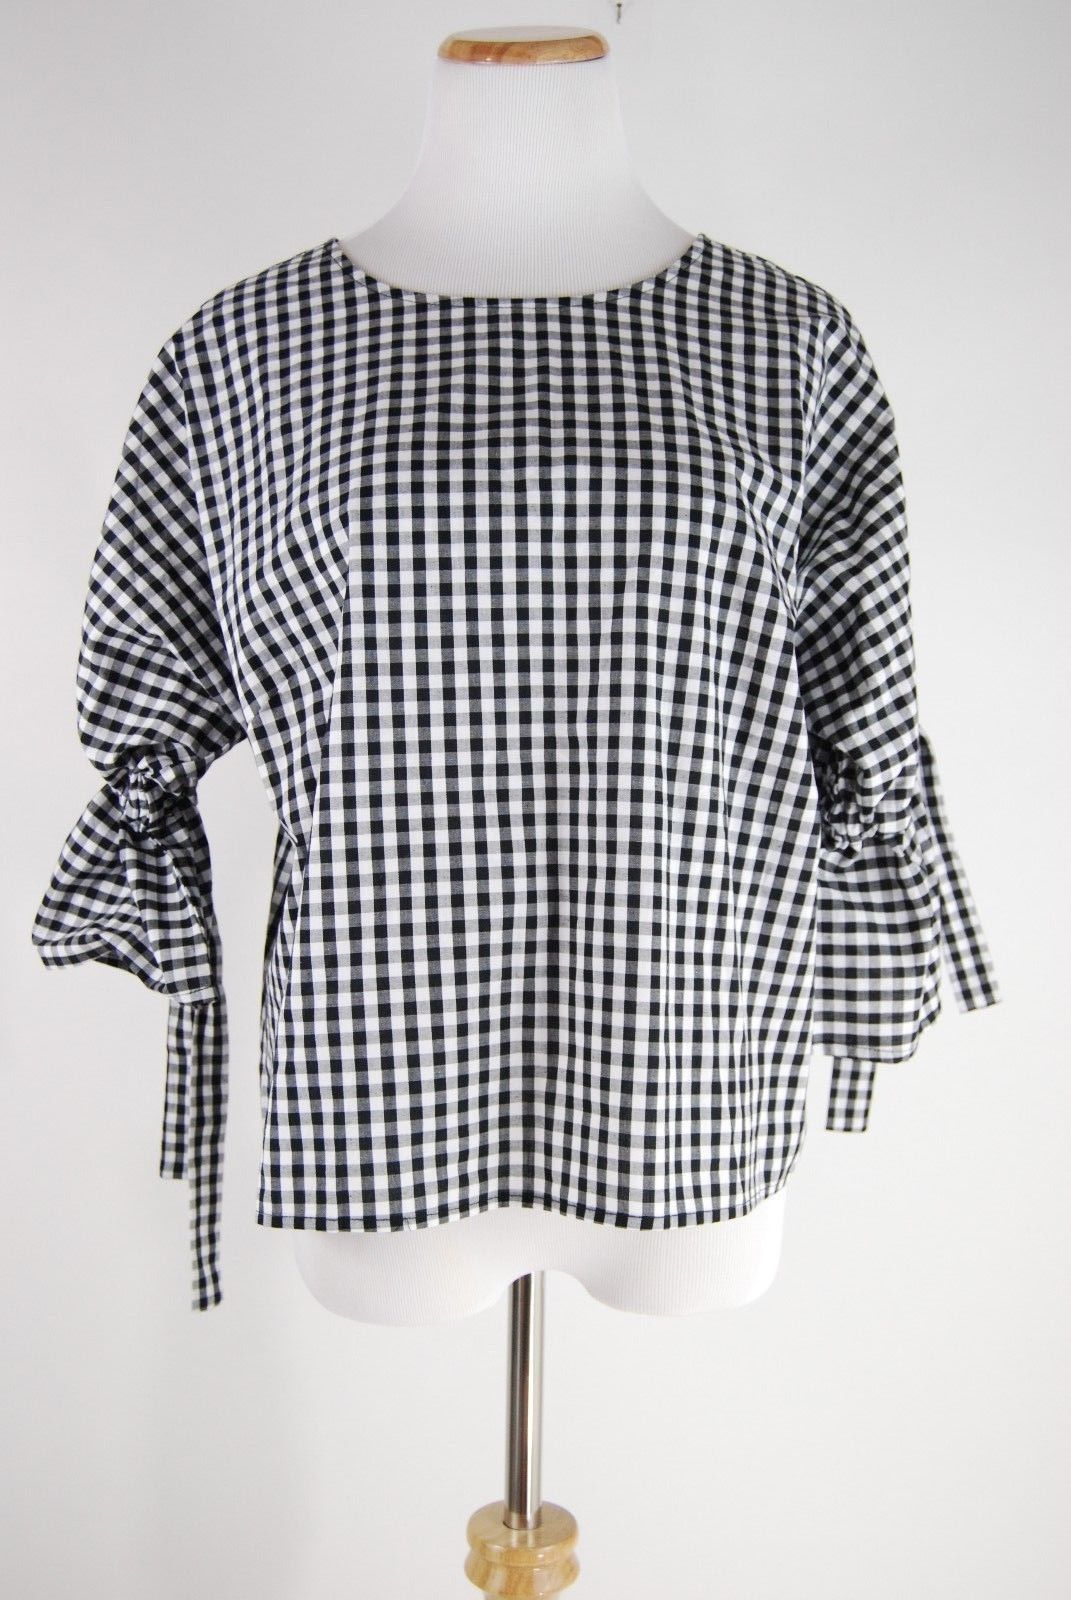 Primary image for NWT Anthropologie Gingham Tie-Sleeve Blouse - Sunday in Brooklyn - Size L